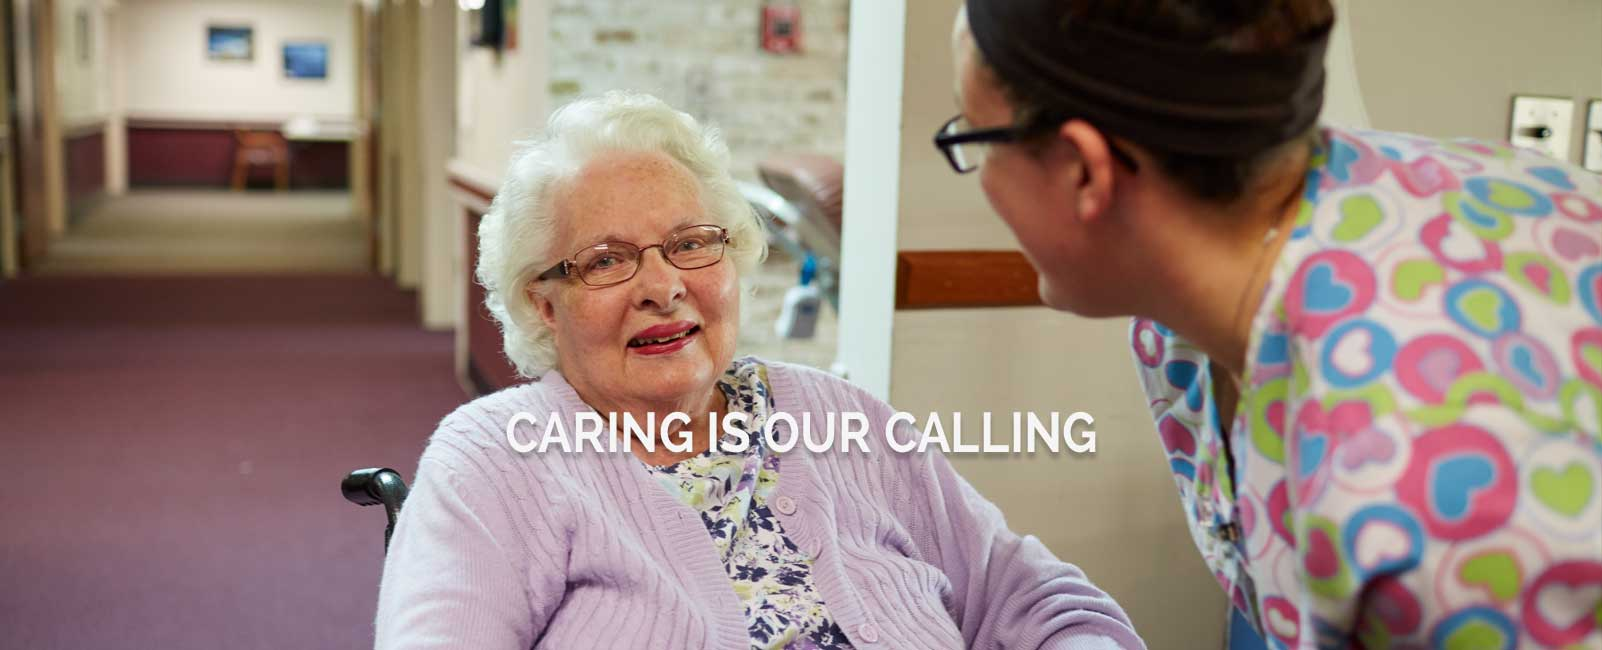 skilled-nursing-facility-heritage-ministries-western-nyskilled-nursing-facility-heritage-ministries-western-ny